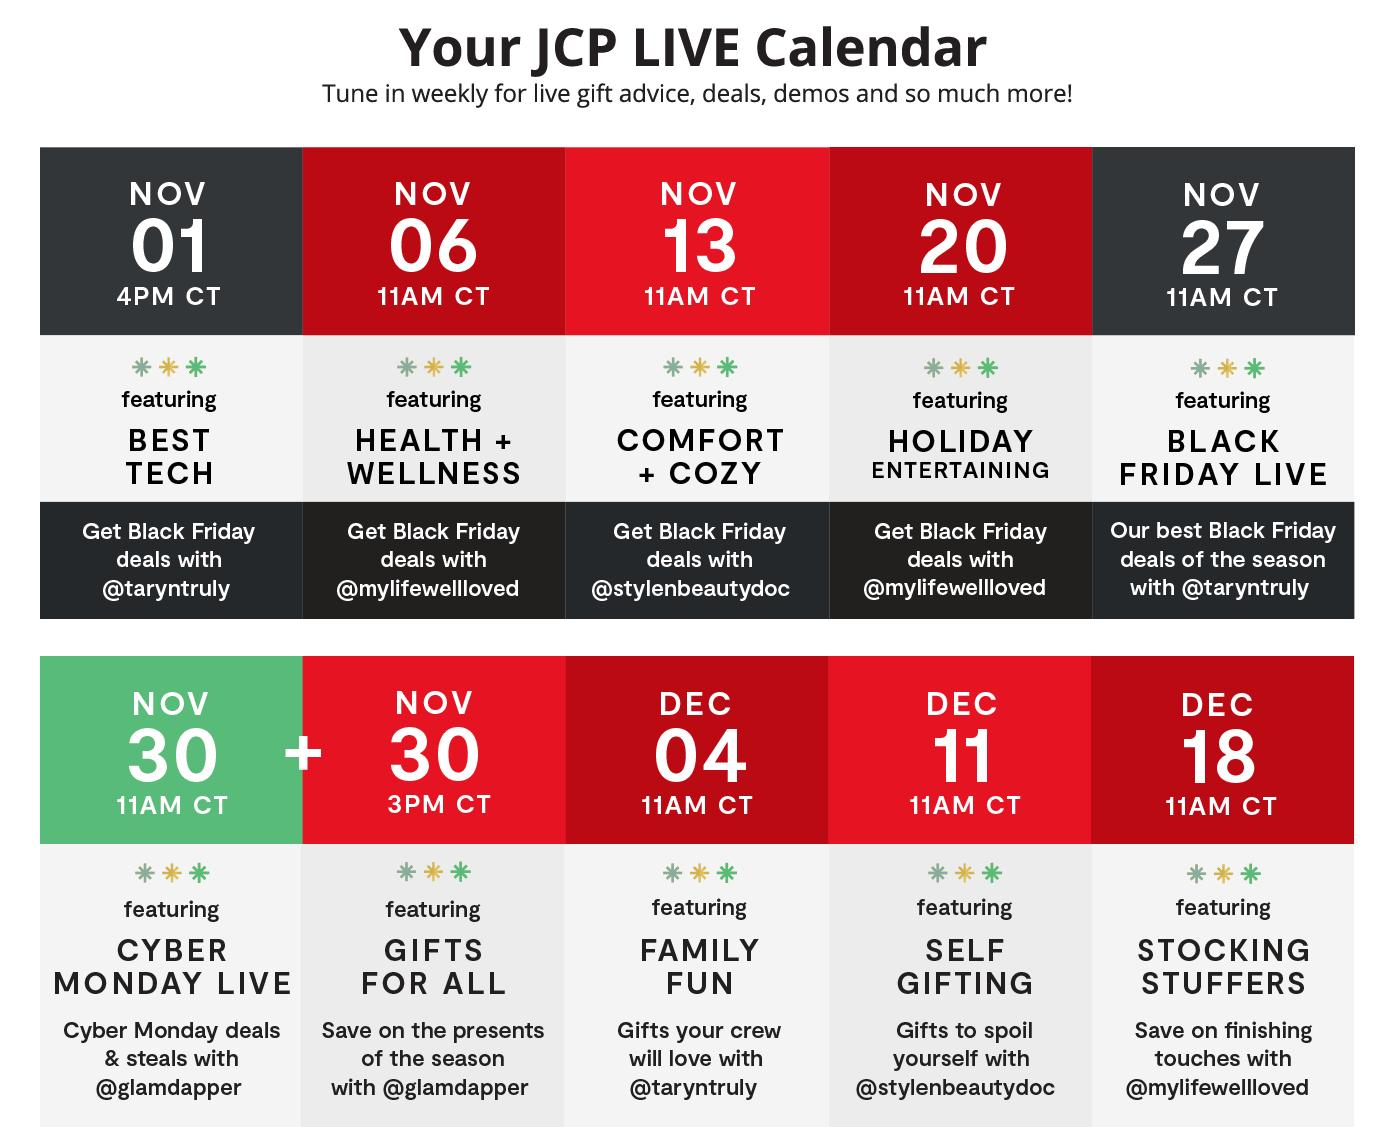 Your JCP LIVE Calendar Tune in weekly for live gift advice, deals, demos and so much more! Holiday Countdown New episodes weekly Nov 01–Dec 18